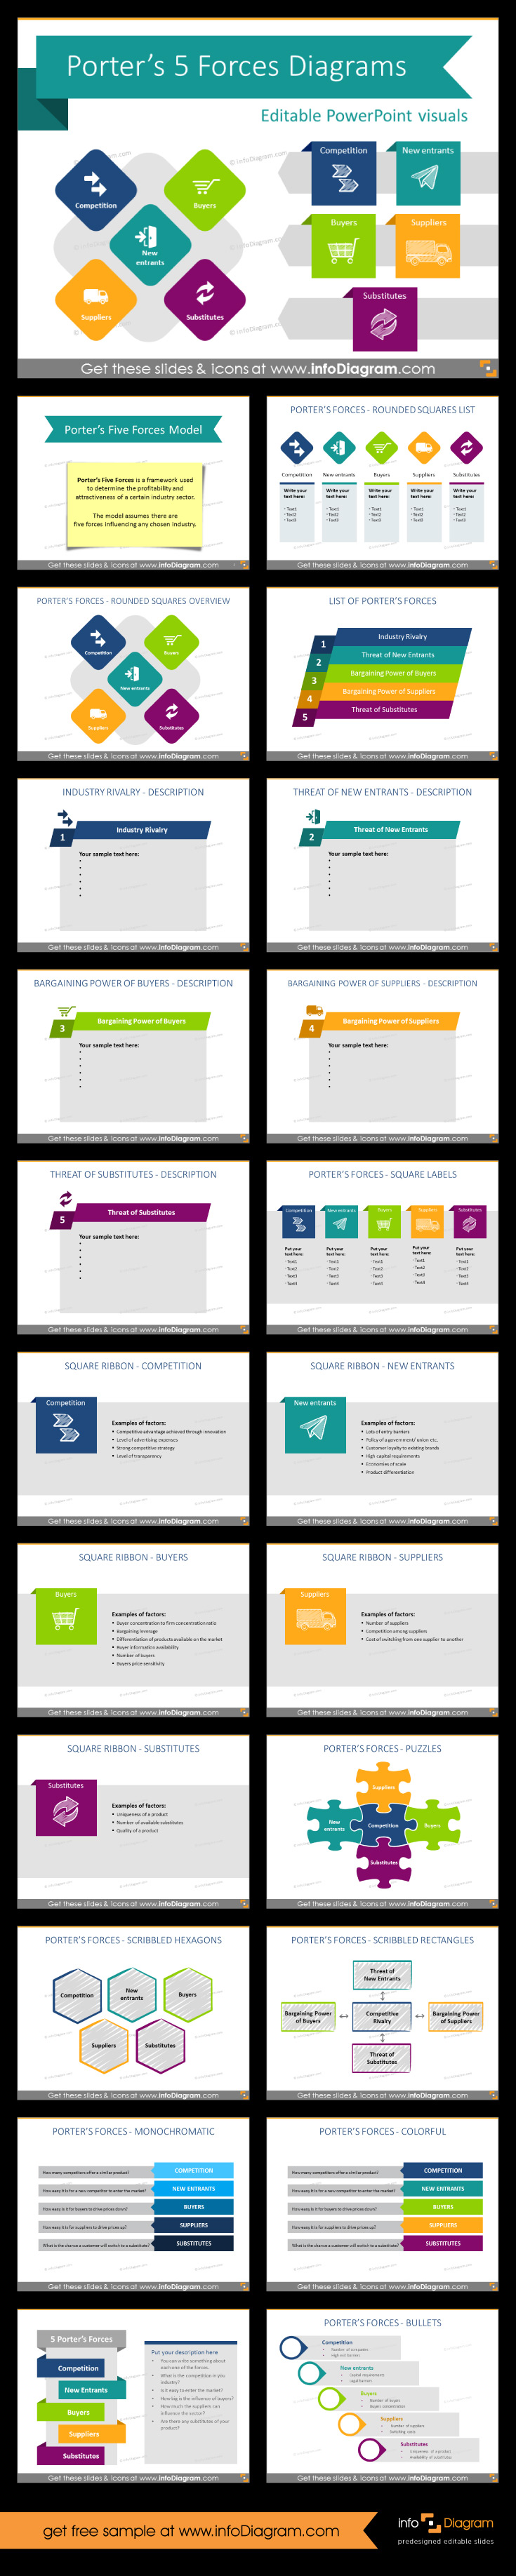 Porter Forces Marketing Model Diagram Ppt Chart Icons Biz Diagrams Of Collection Porters As Pre Designed Powerpoint Slides Set Various